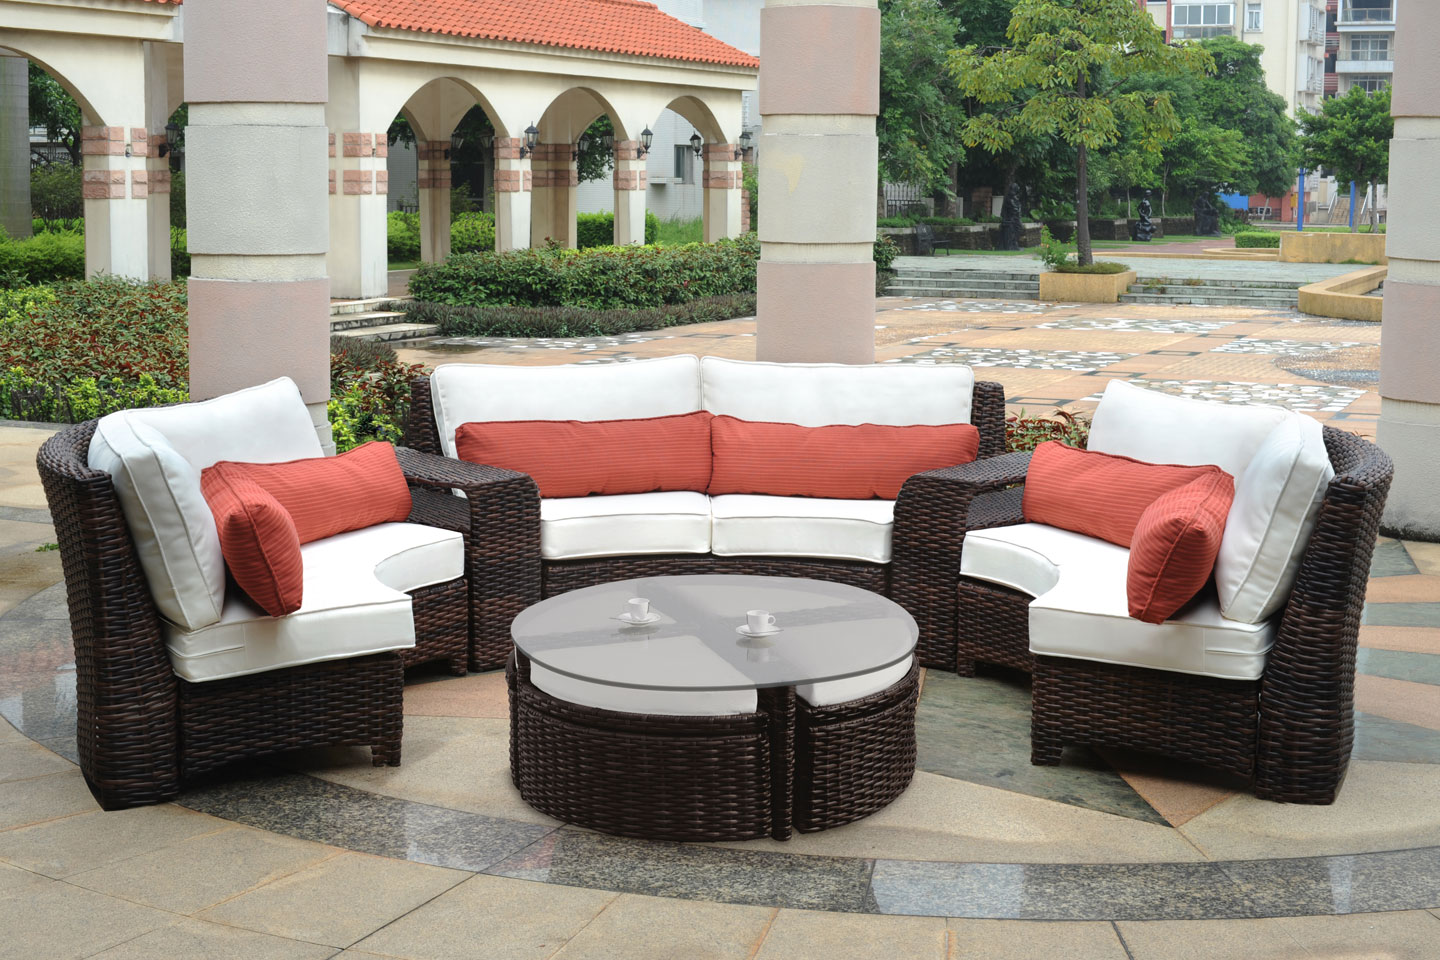 Backyard Patio Furniture : Here Home >> Outdoor > Outdoor Patio Seating > Fiji Curved Outdo